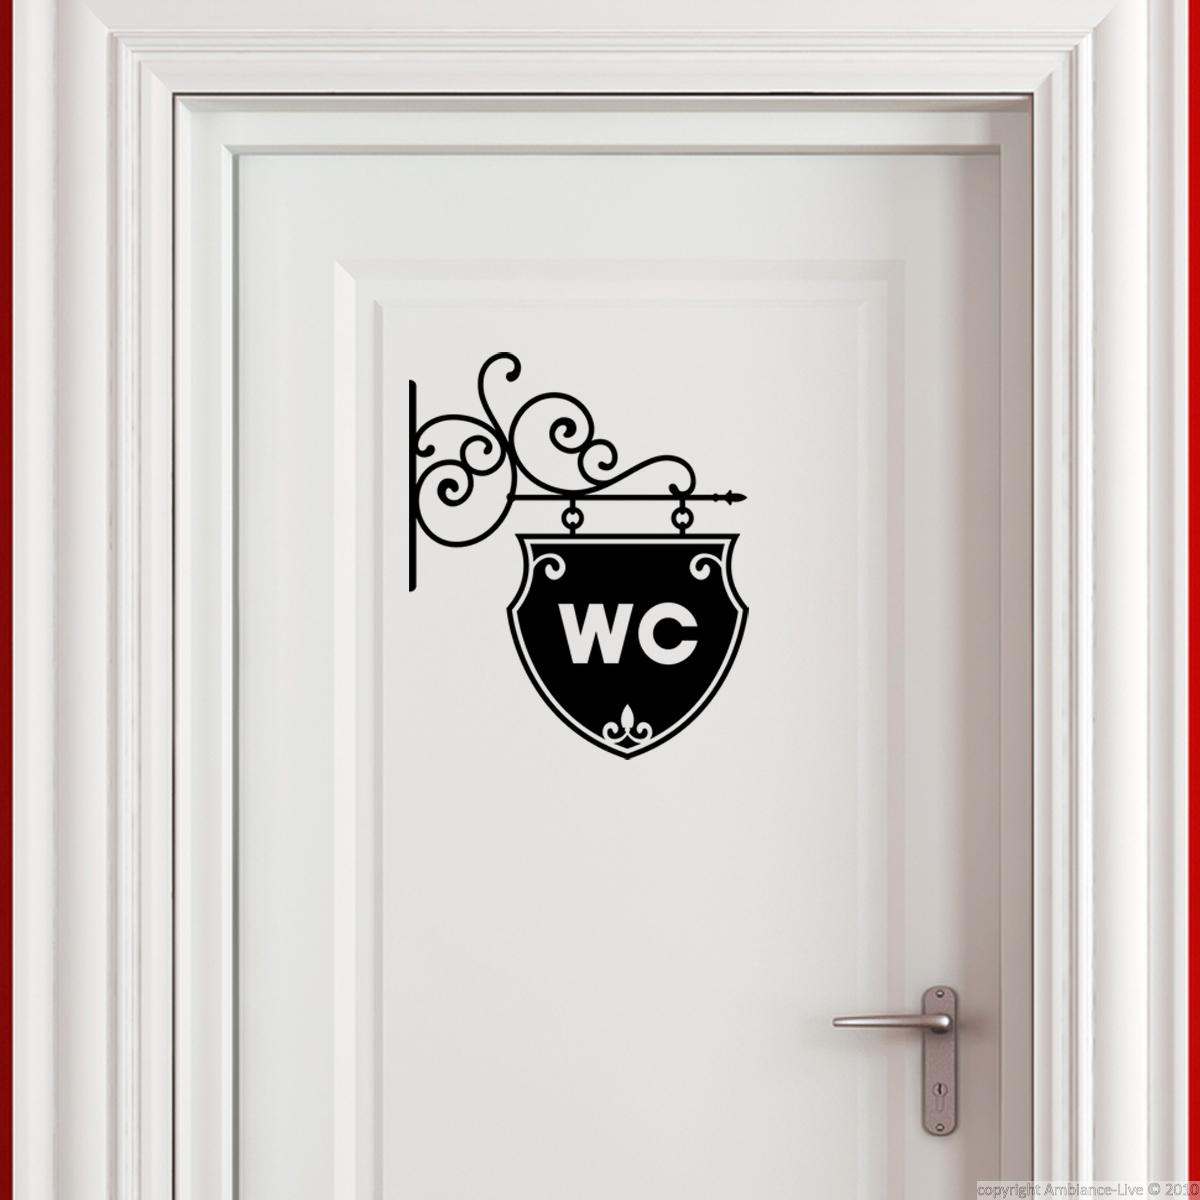 stickers muraux pour wc sticker mural plaque pour wc ambiance. Black Bedroom Furniture Sets. Home Design Ideas